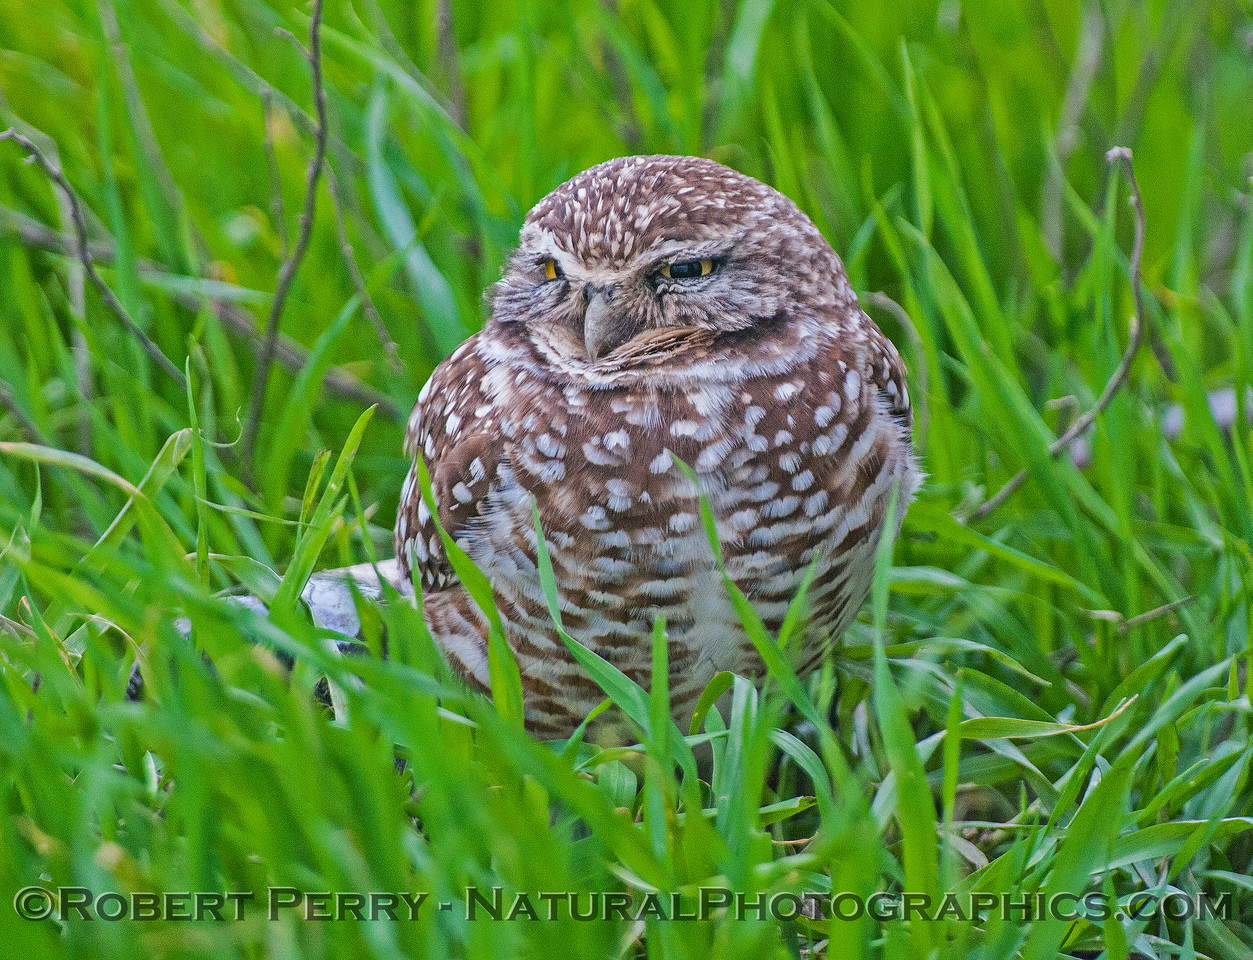 A drowsy owl in the grass.